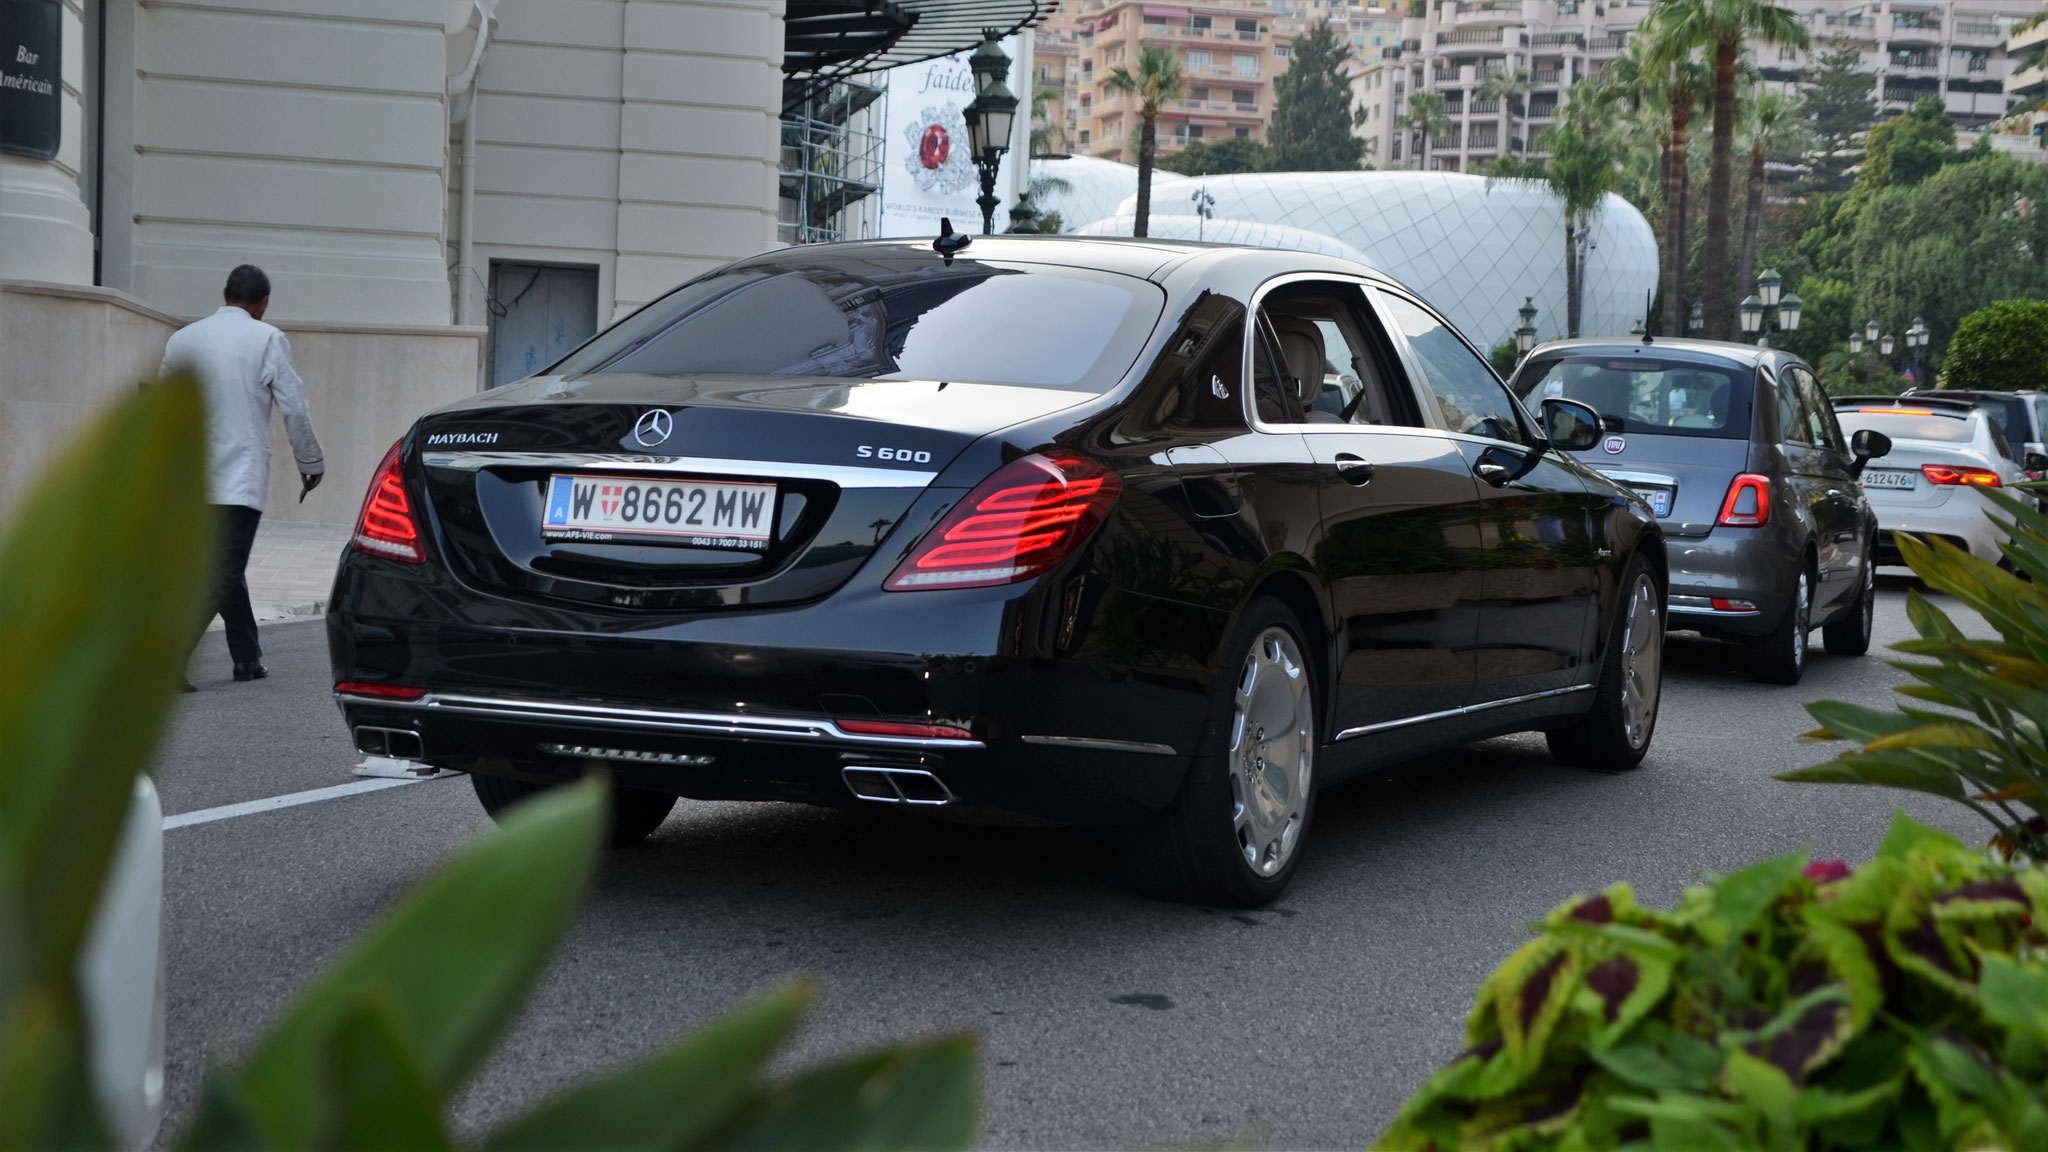 Mercedes Maybach S600 - W-8662-MW (AUT)